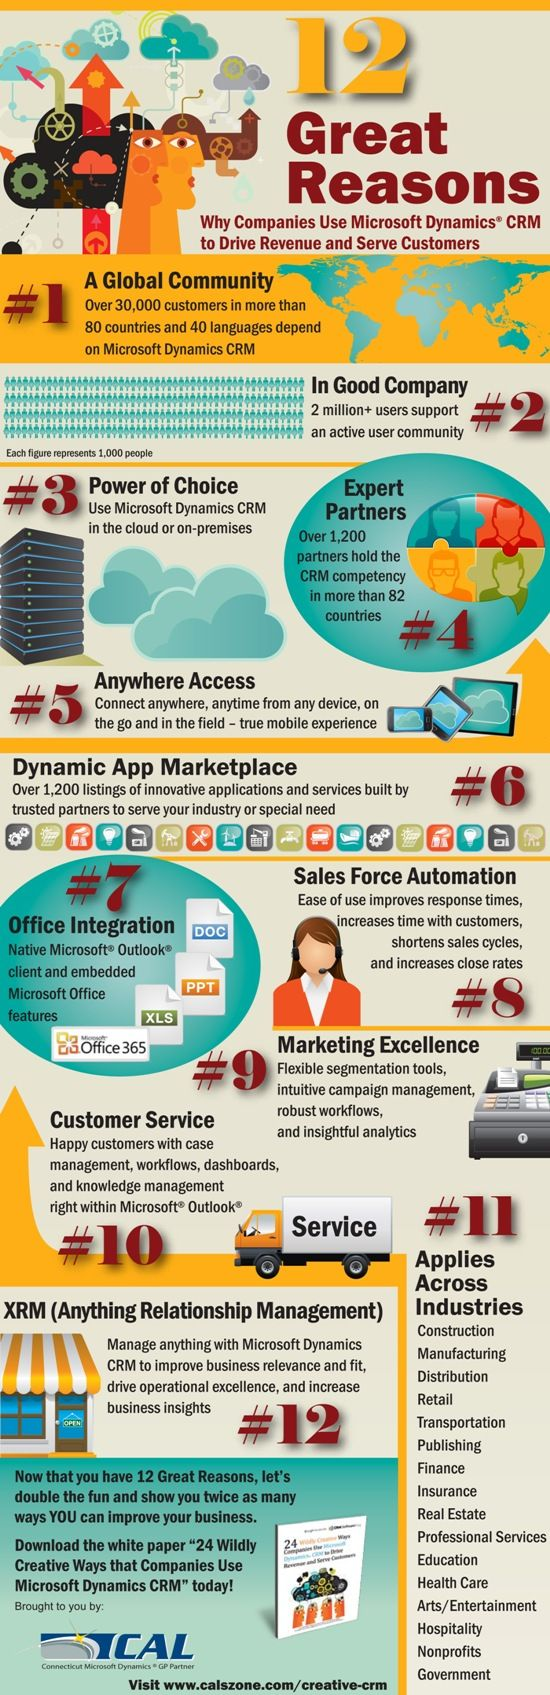 12 Great Reasons Companies Use Microsoft Dynamics CRM - More info at http://www.calszone.com/free-resources-microsoft-dynamics-gp/infographics/infographic-12-great-reasons-companies-use-microsoft-dynamics-crm/